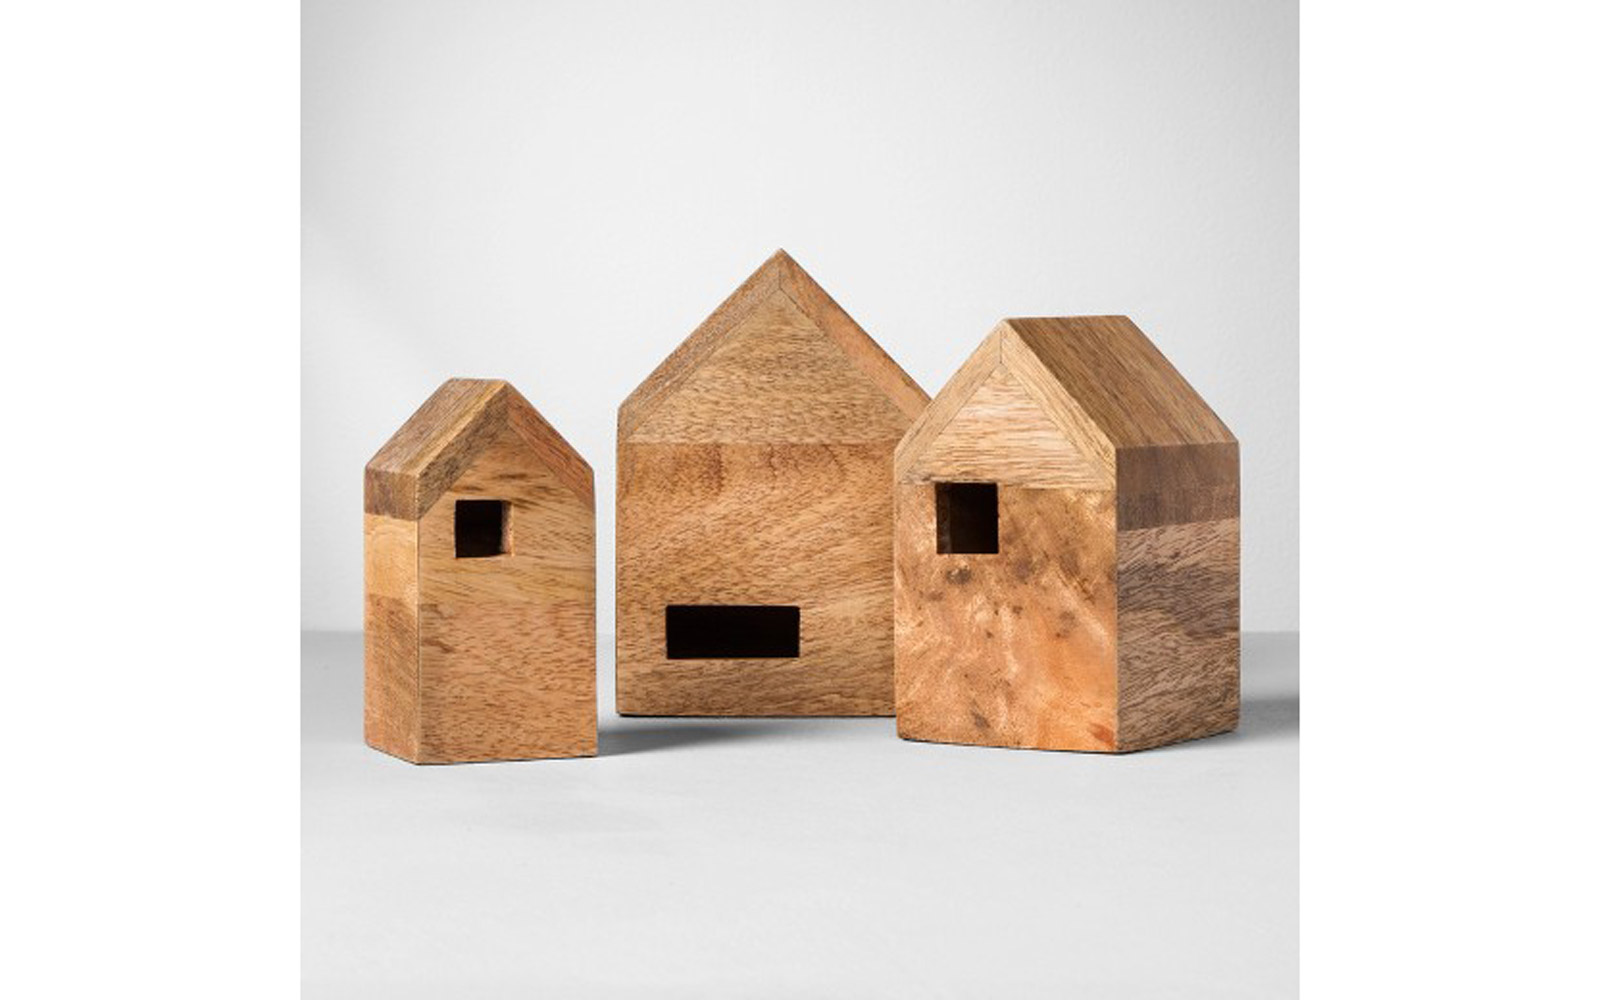 Hearth & Hand with Magnolia: Wood Nesting Houses